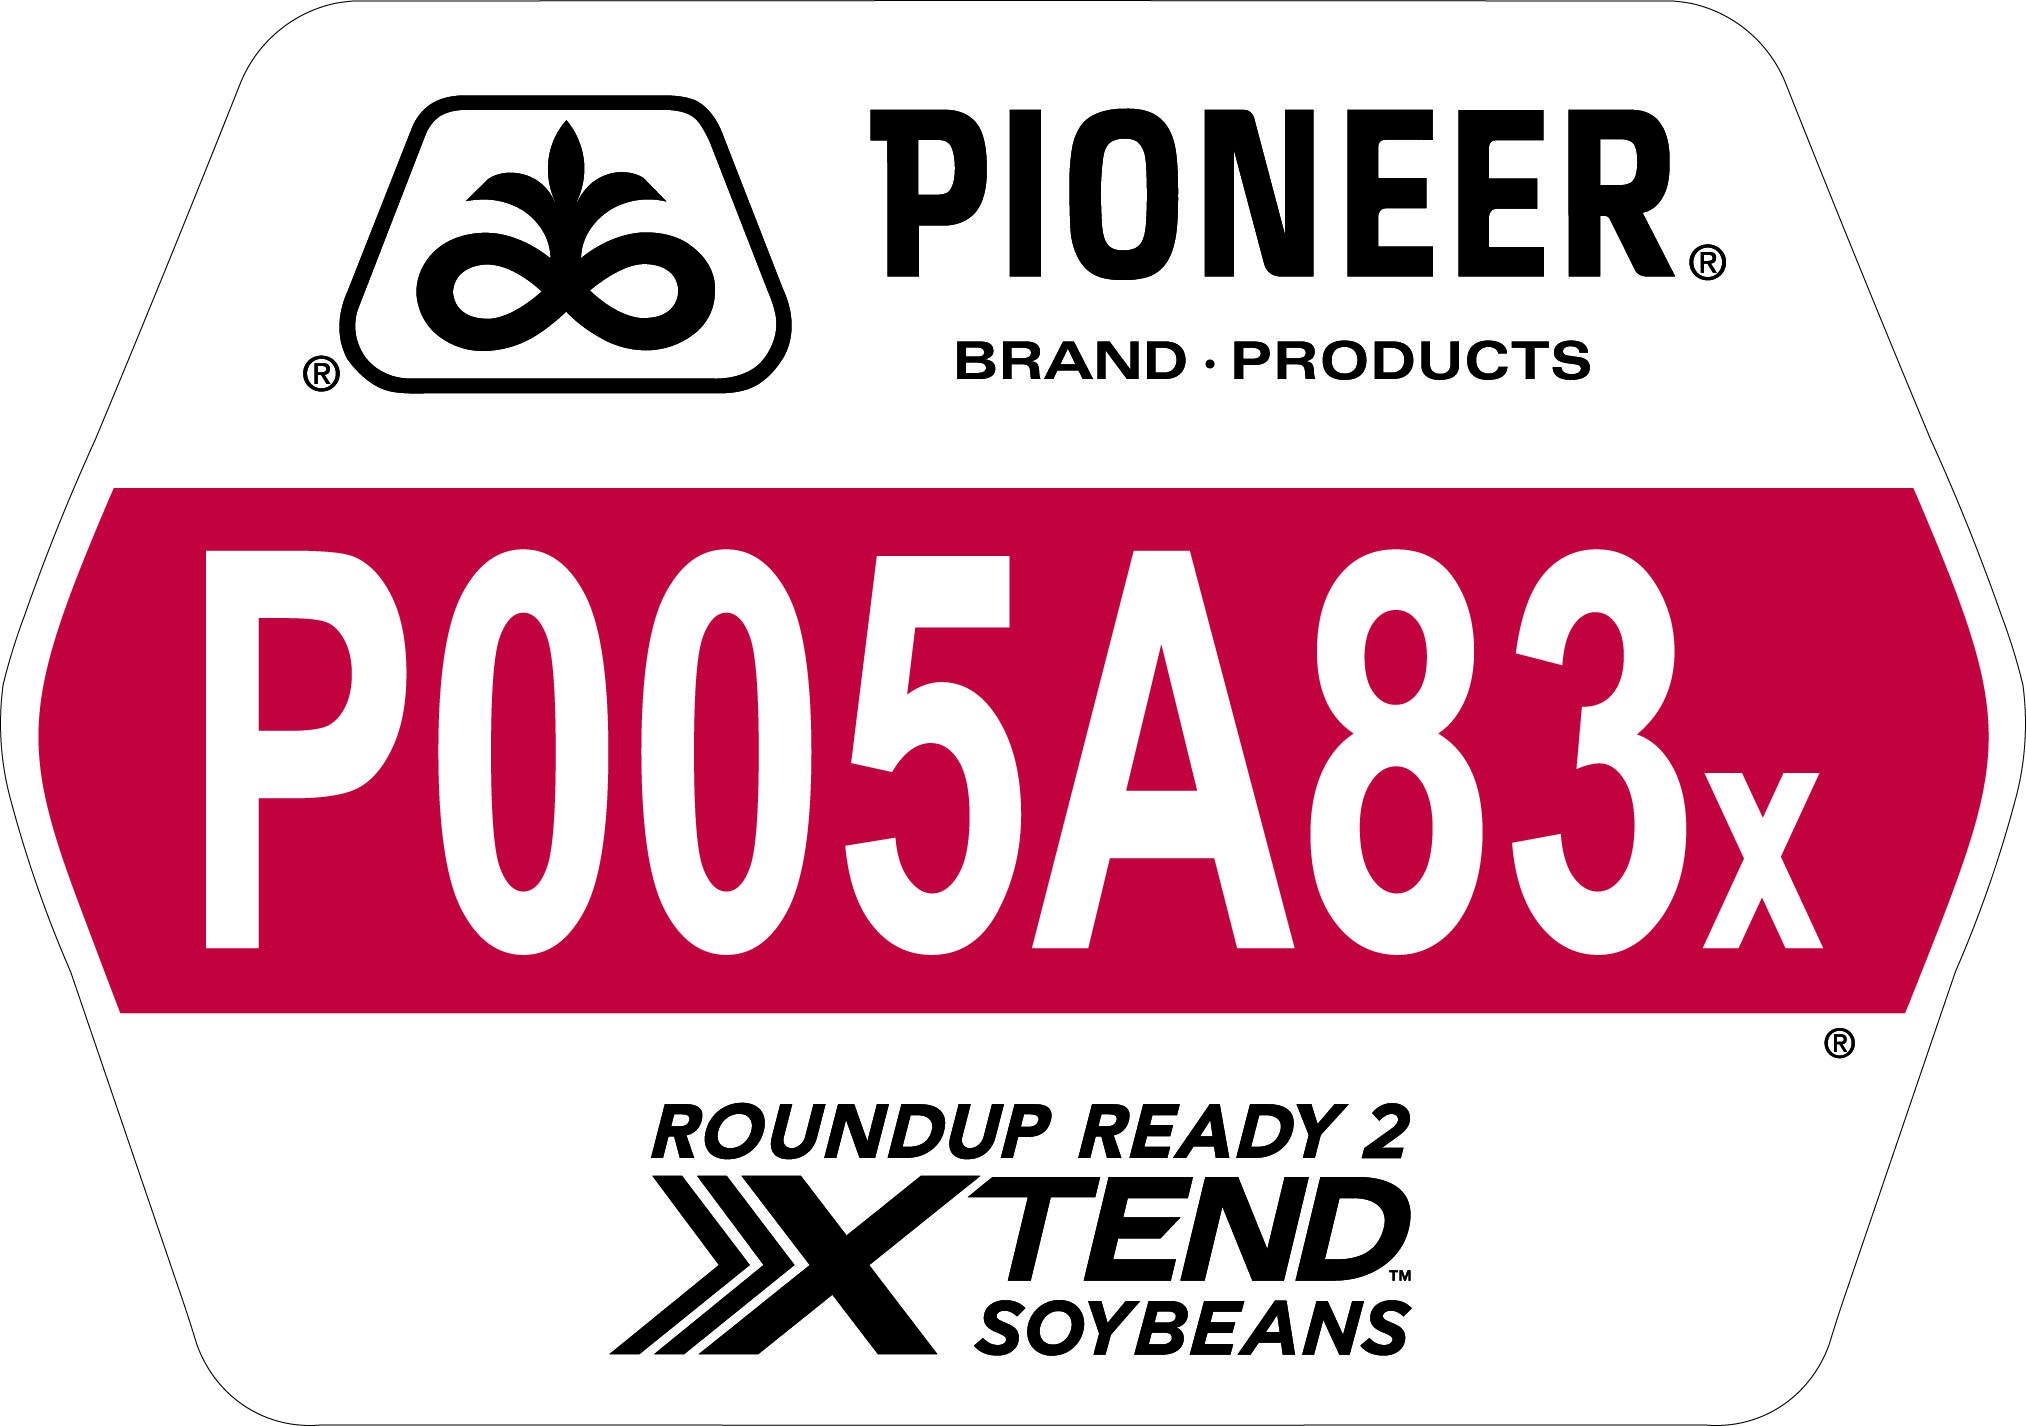 Seed - Pioneer - Soybeans - P005A83X